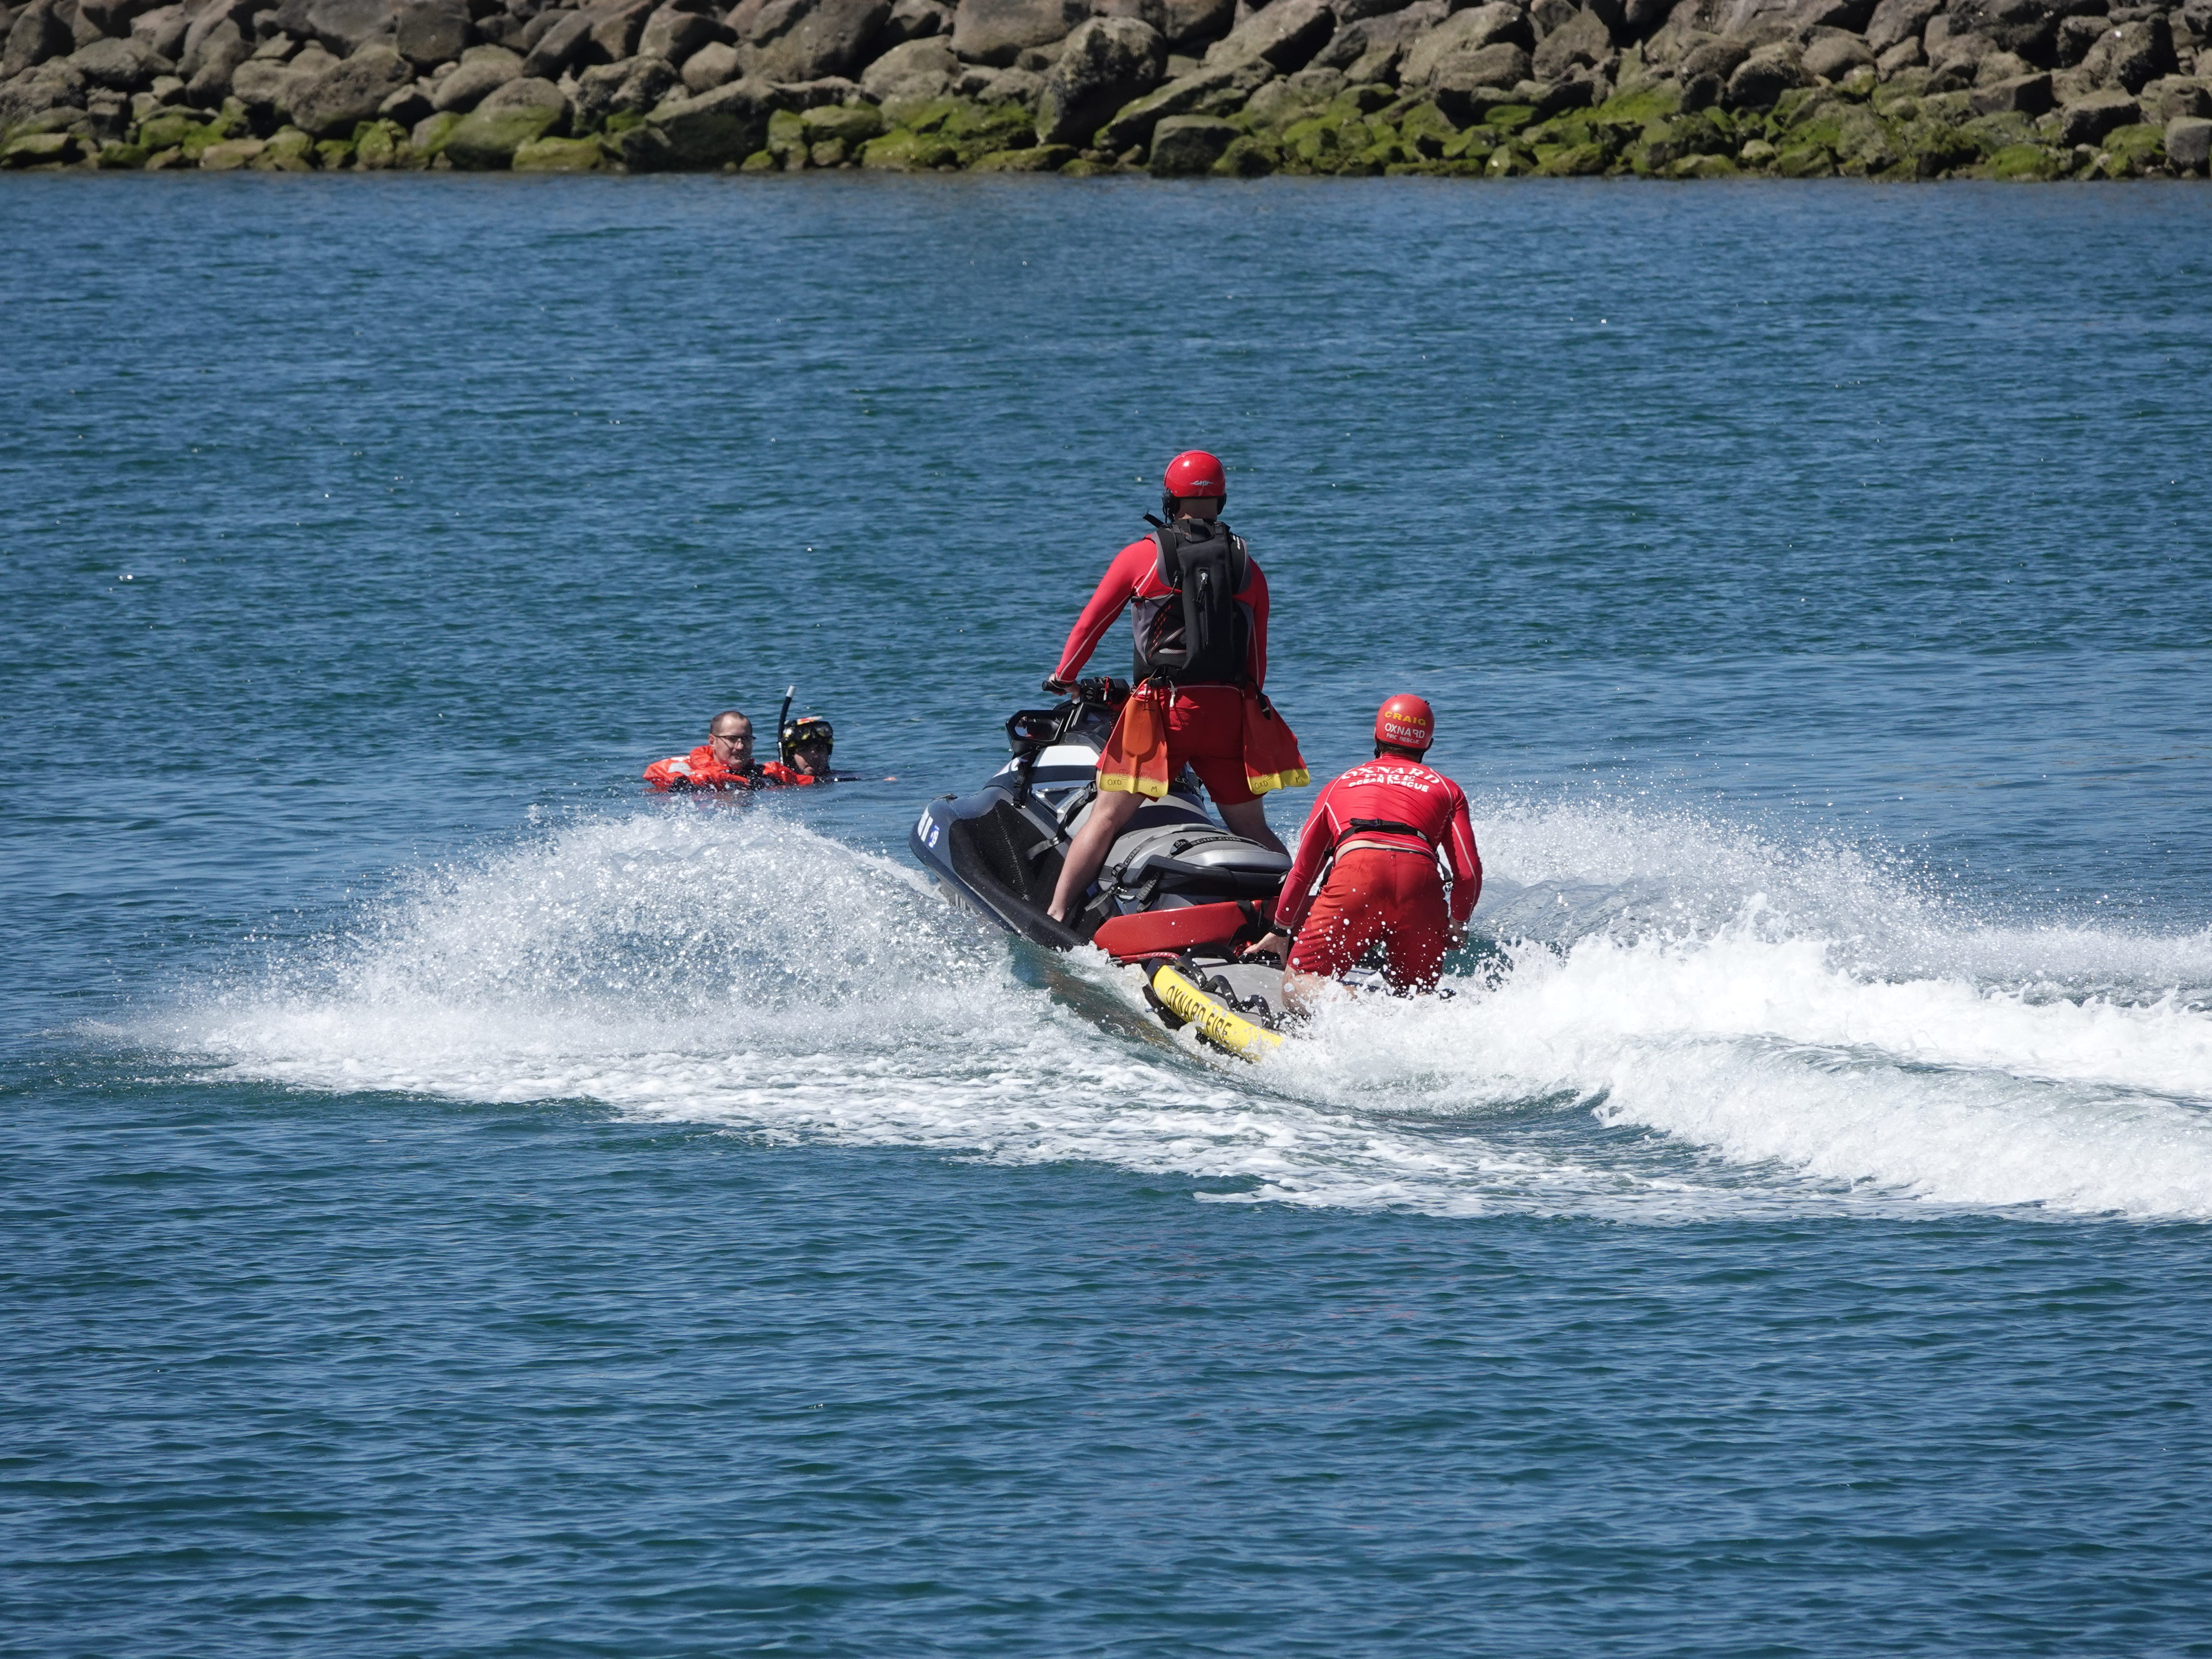 Oxnard firefighters race toward a mock boating victim during a rescue demonstration Saturday at the 14th annual Safe Boating Expo at Channel Islands Harbor.